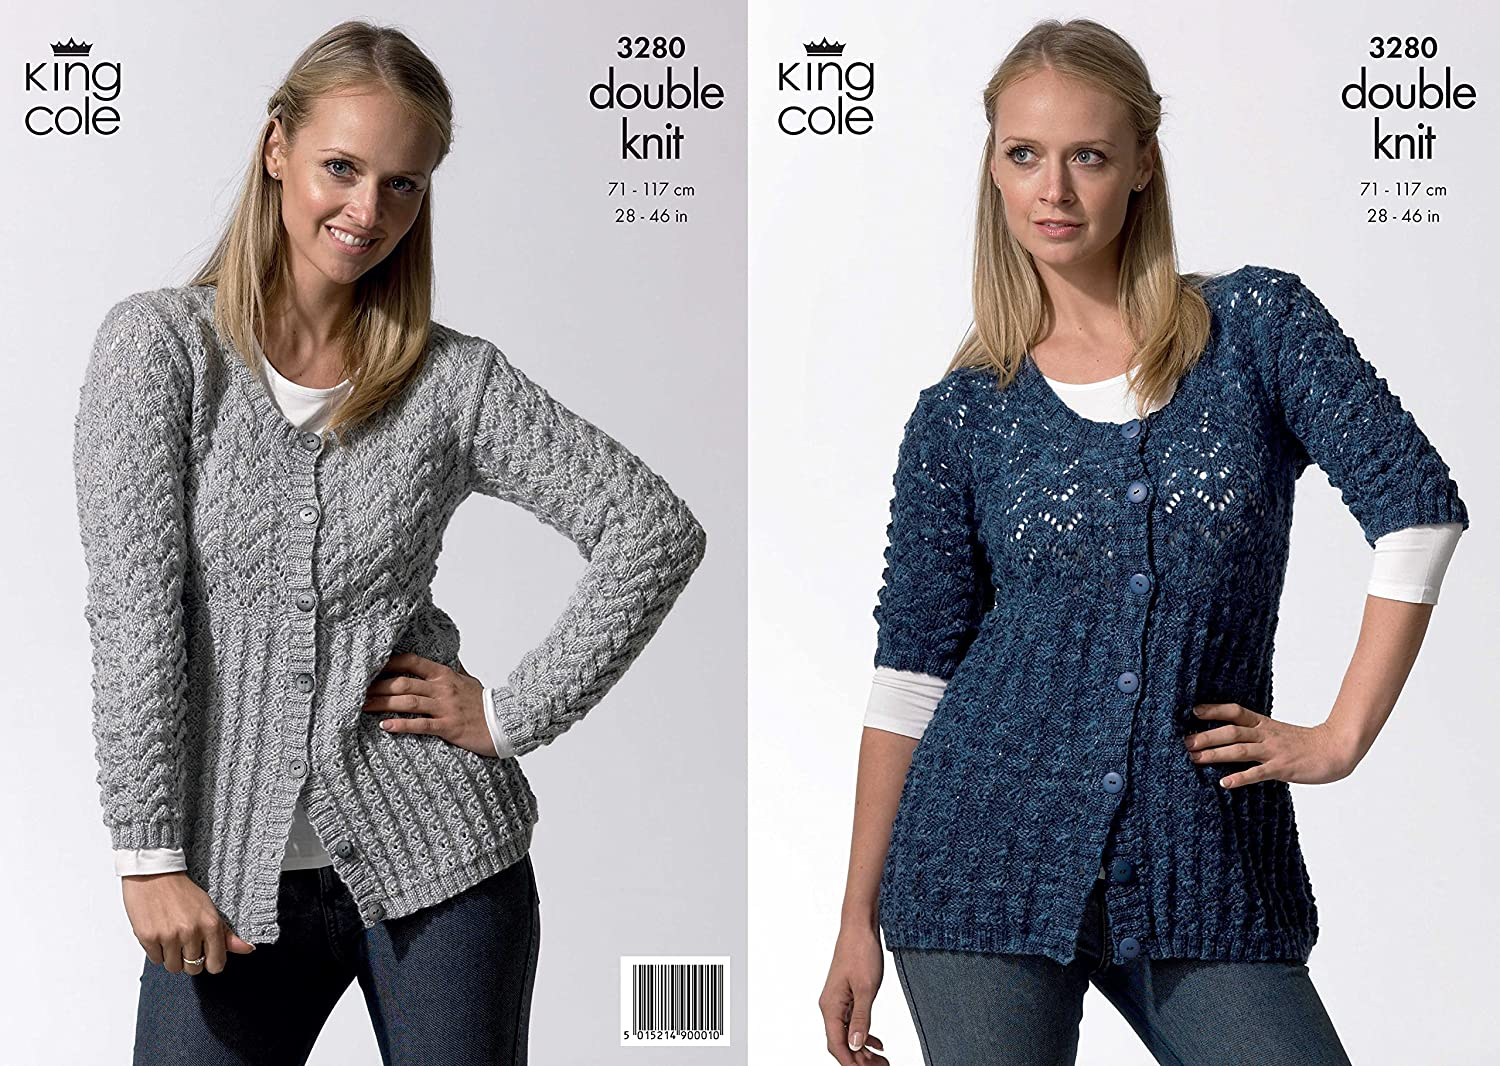 King cole ladies cardigans knitting pattern 3280 amazon king cole ladies cardigans knitting pattern 3280 amazon kitchen home bankloansurffo Images